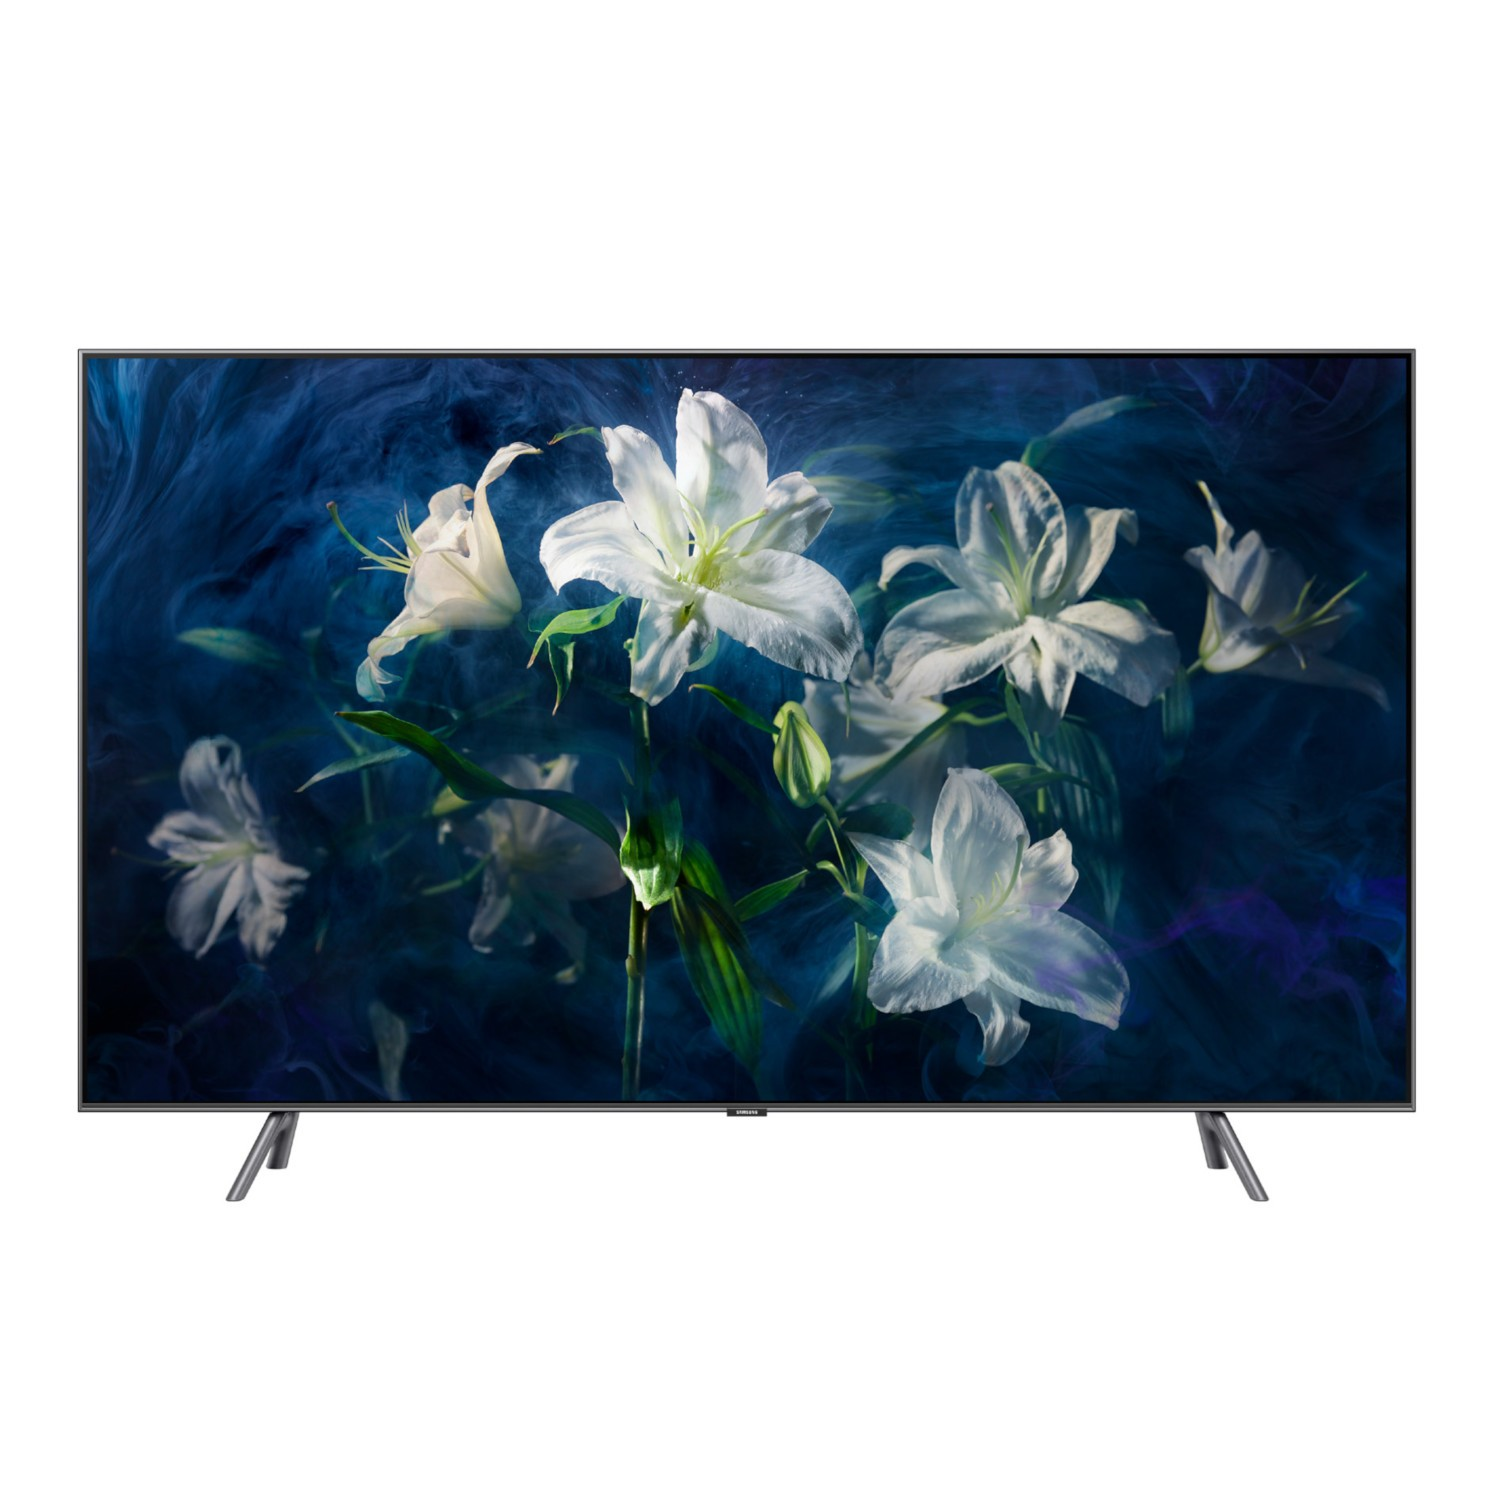 Tv 55 Samsung Qled 4k Uhd Smart Tv Wifi